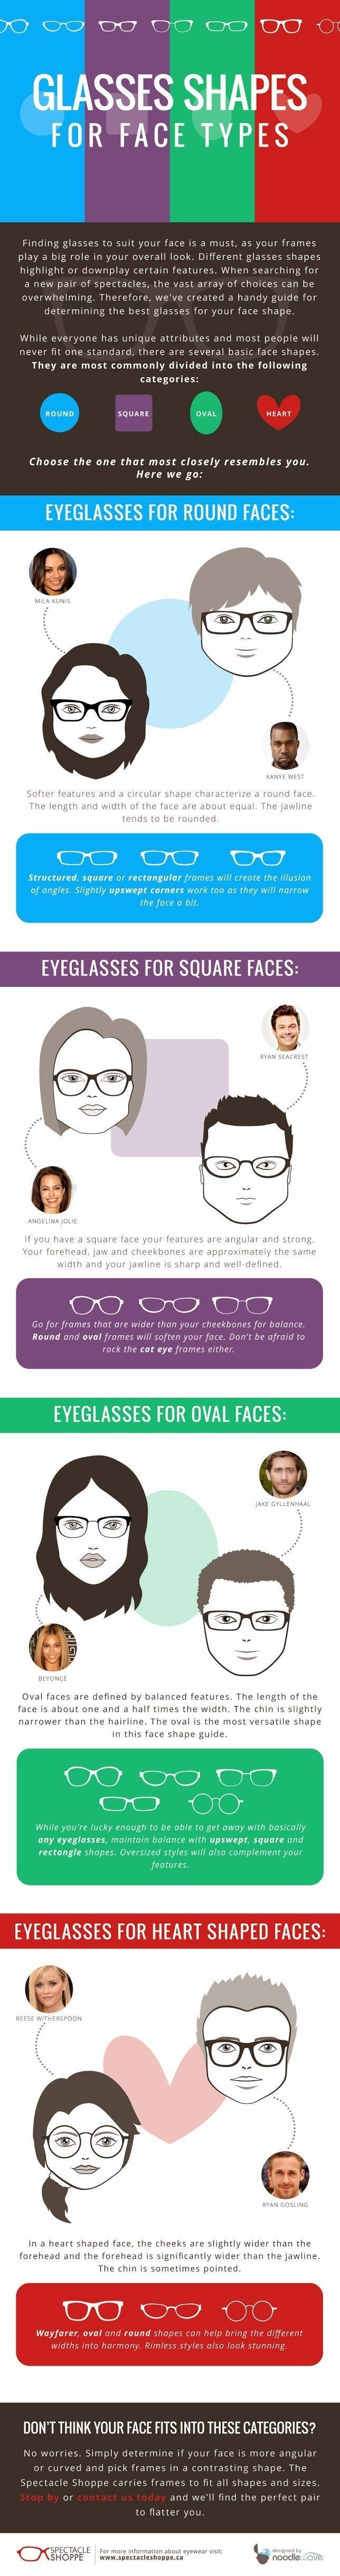 bdbb70accf How To Select Eyeglasses According To Face Shape